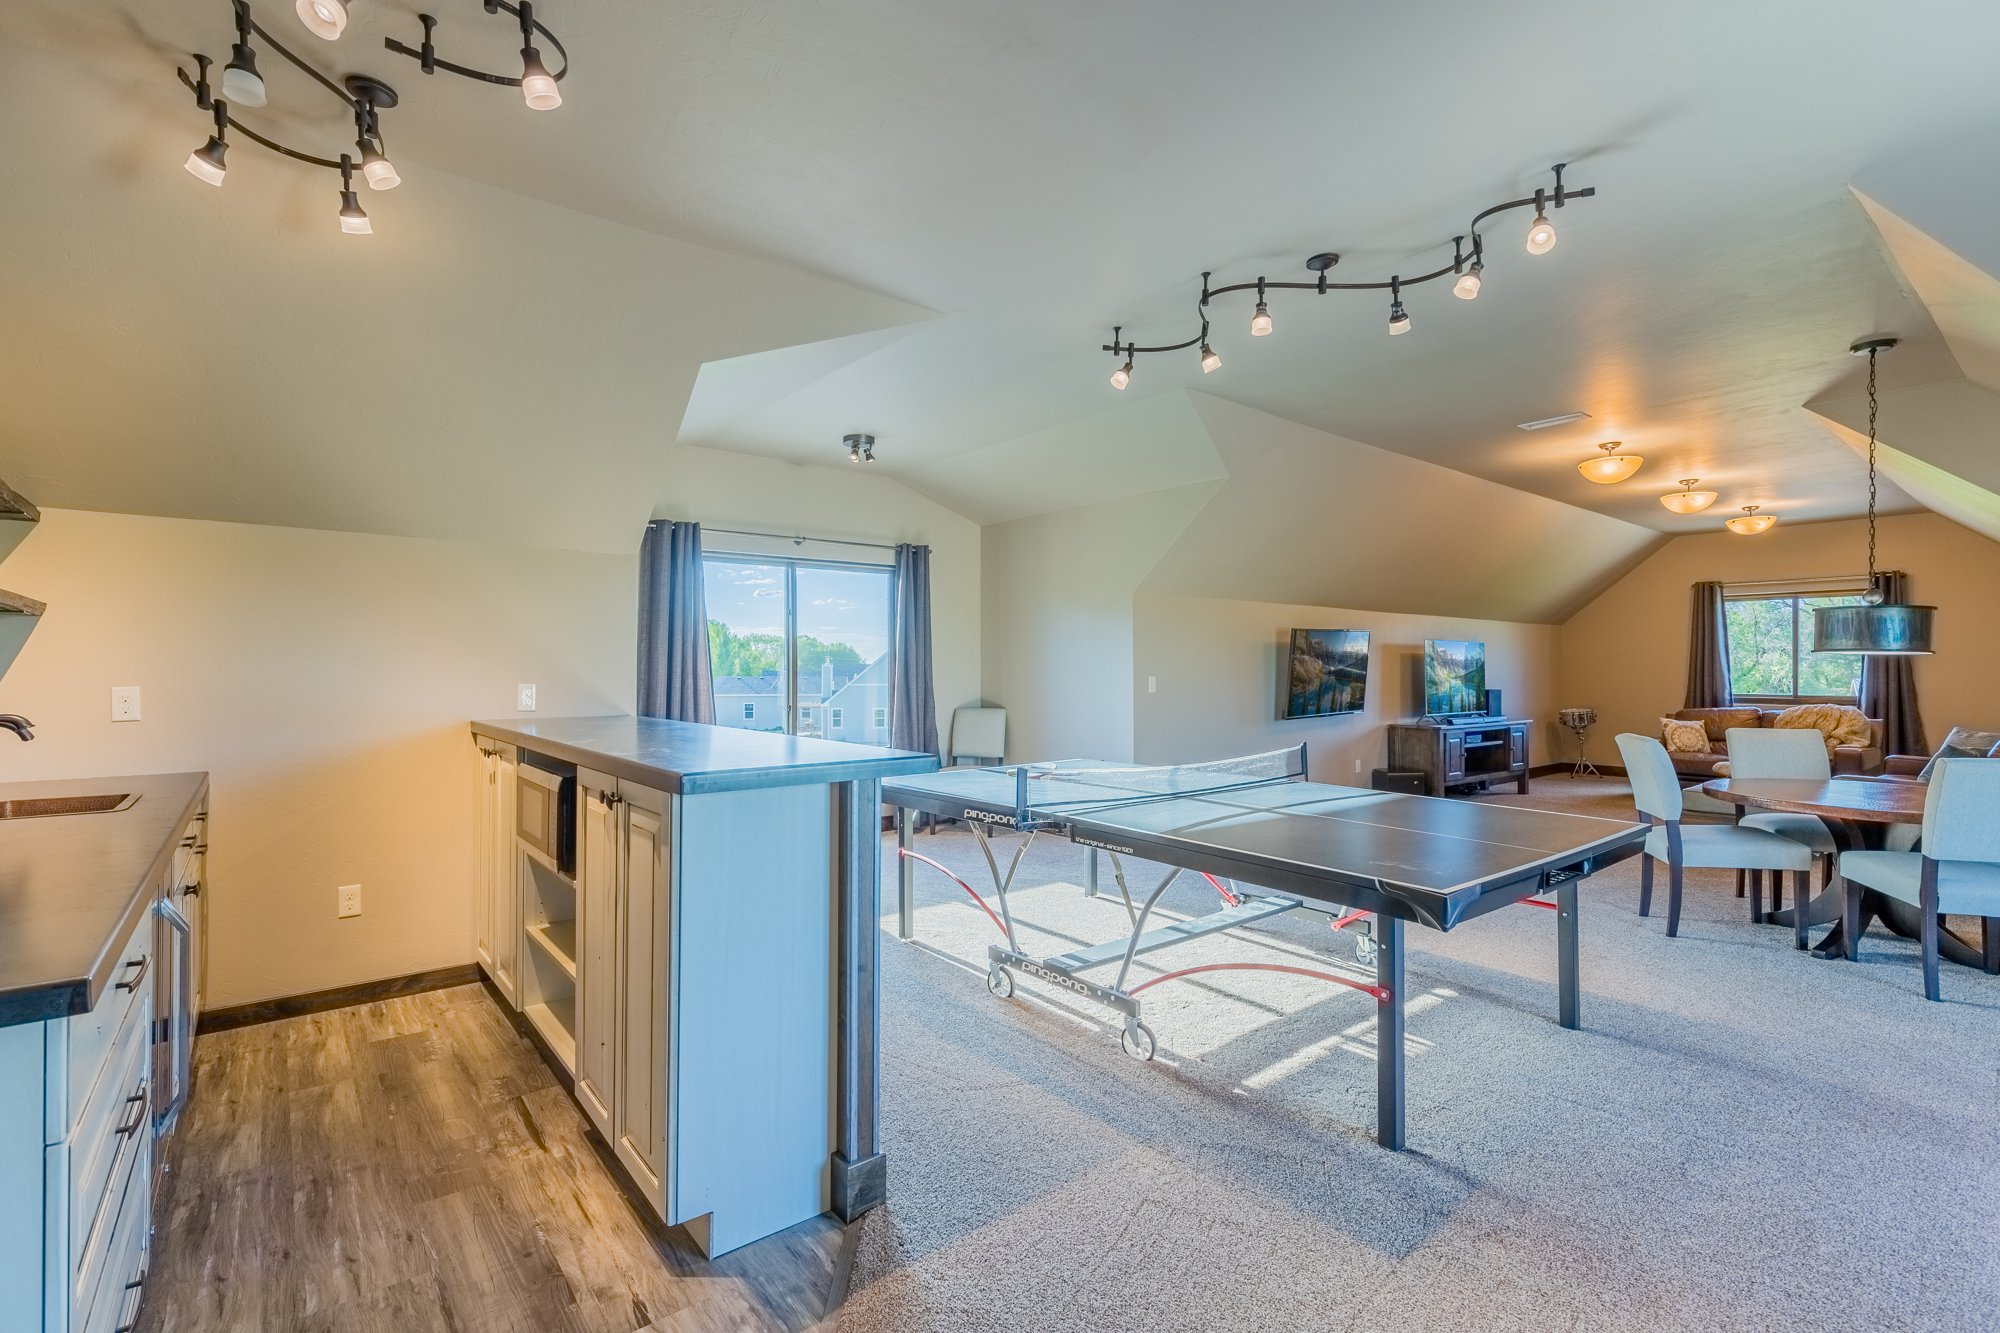 Family Game Room - 15067 6140 Ln Montrose, CO 81403 - Atha Team Luxury Real Estate